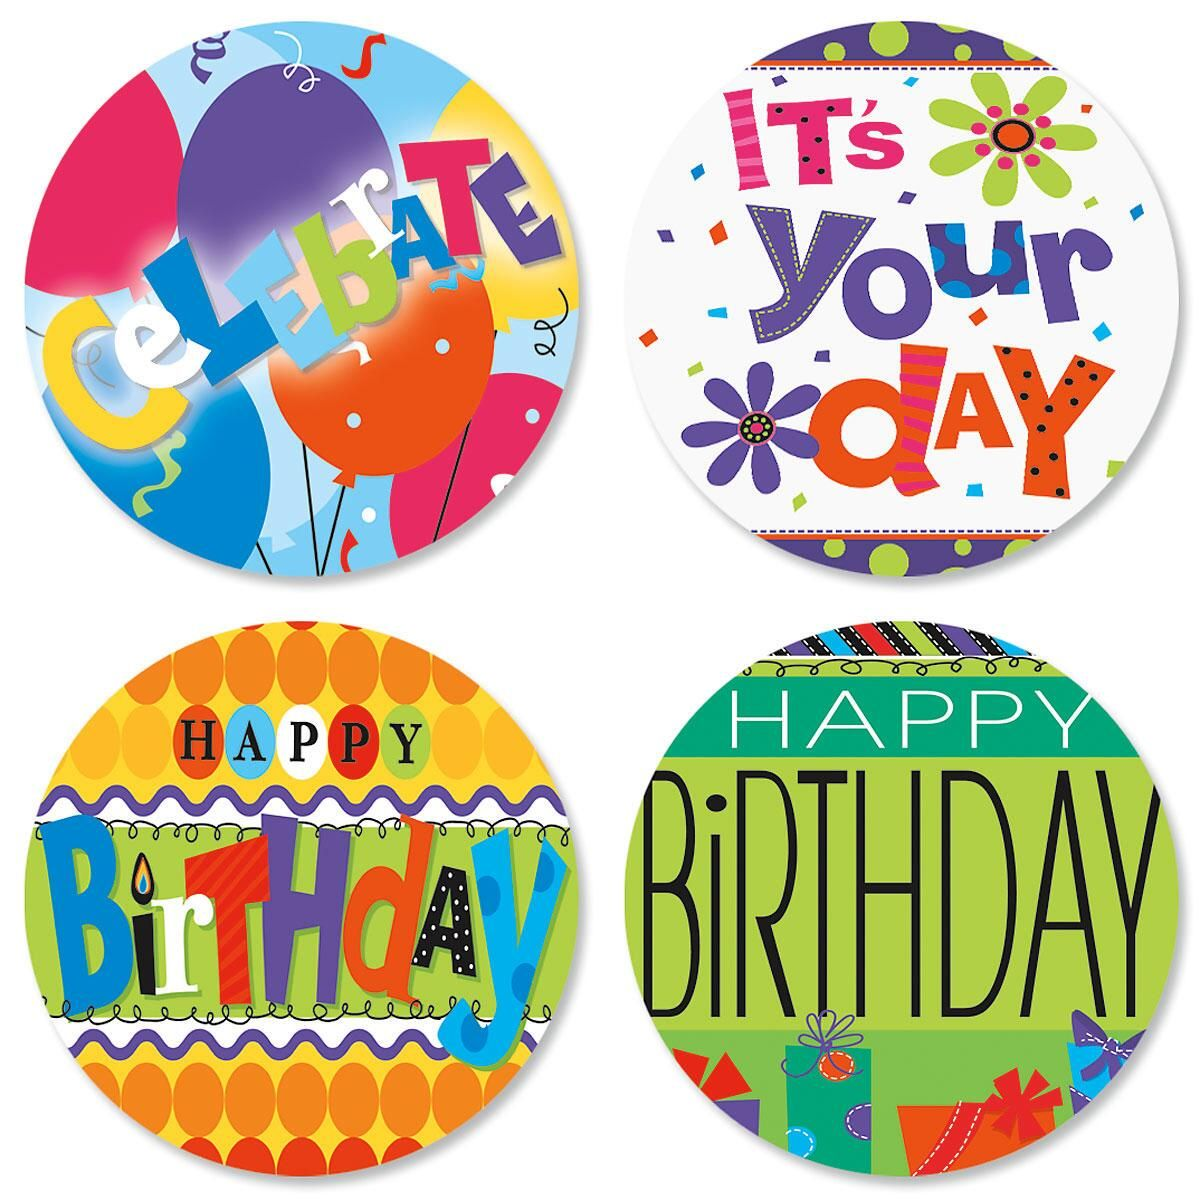 Bright & Bold Birthday Seals (4 Designs)